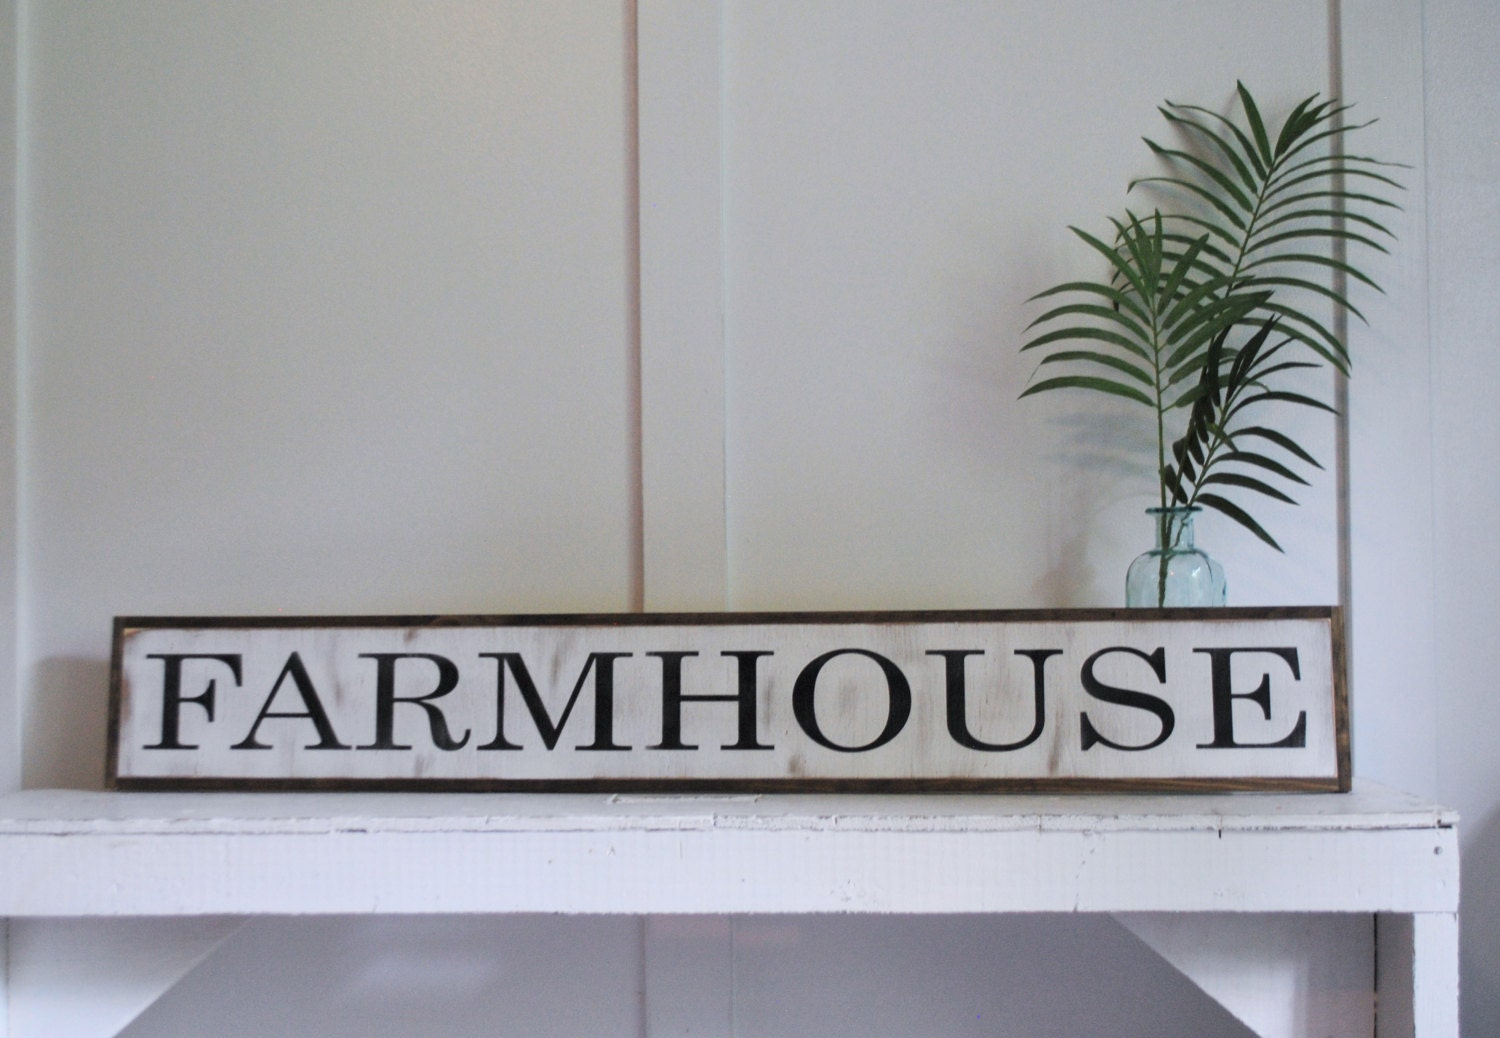 FARMHOUSE 7X48 sign distressed shabby chic wooden sign painted wall art